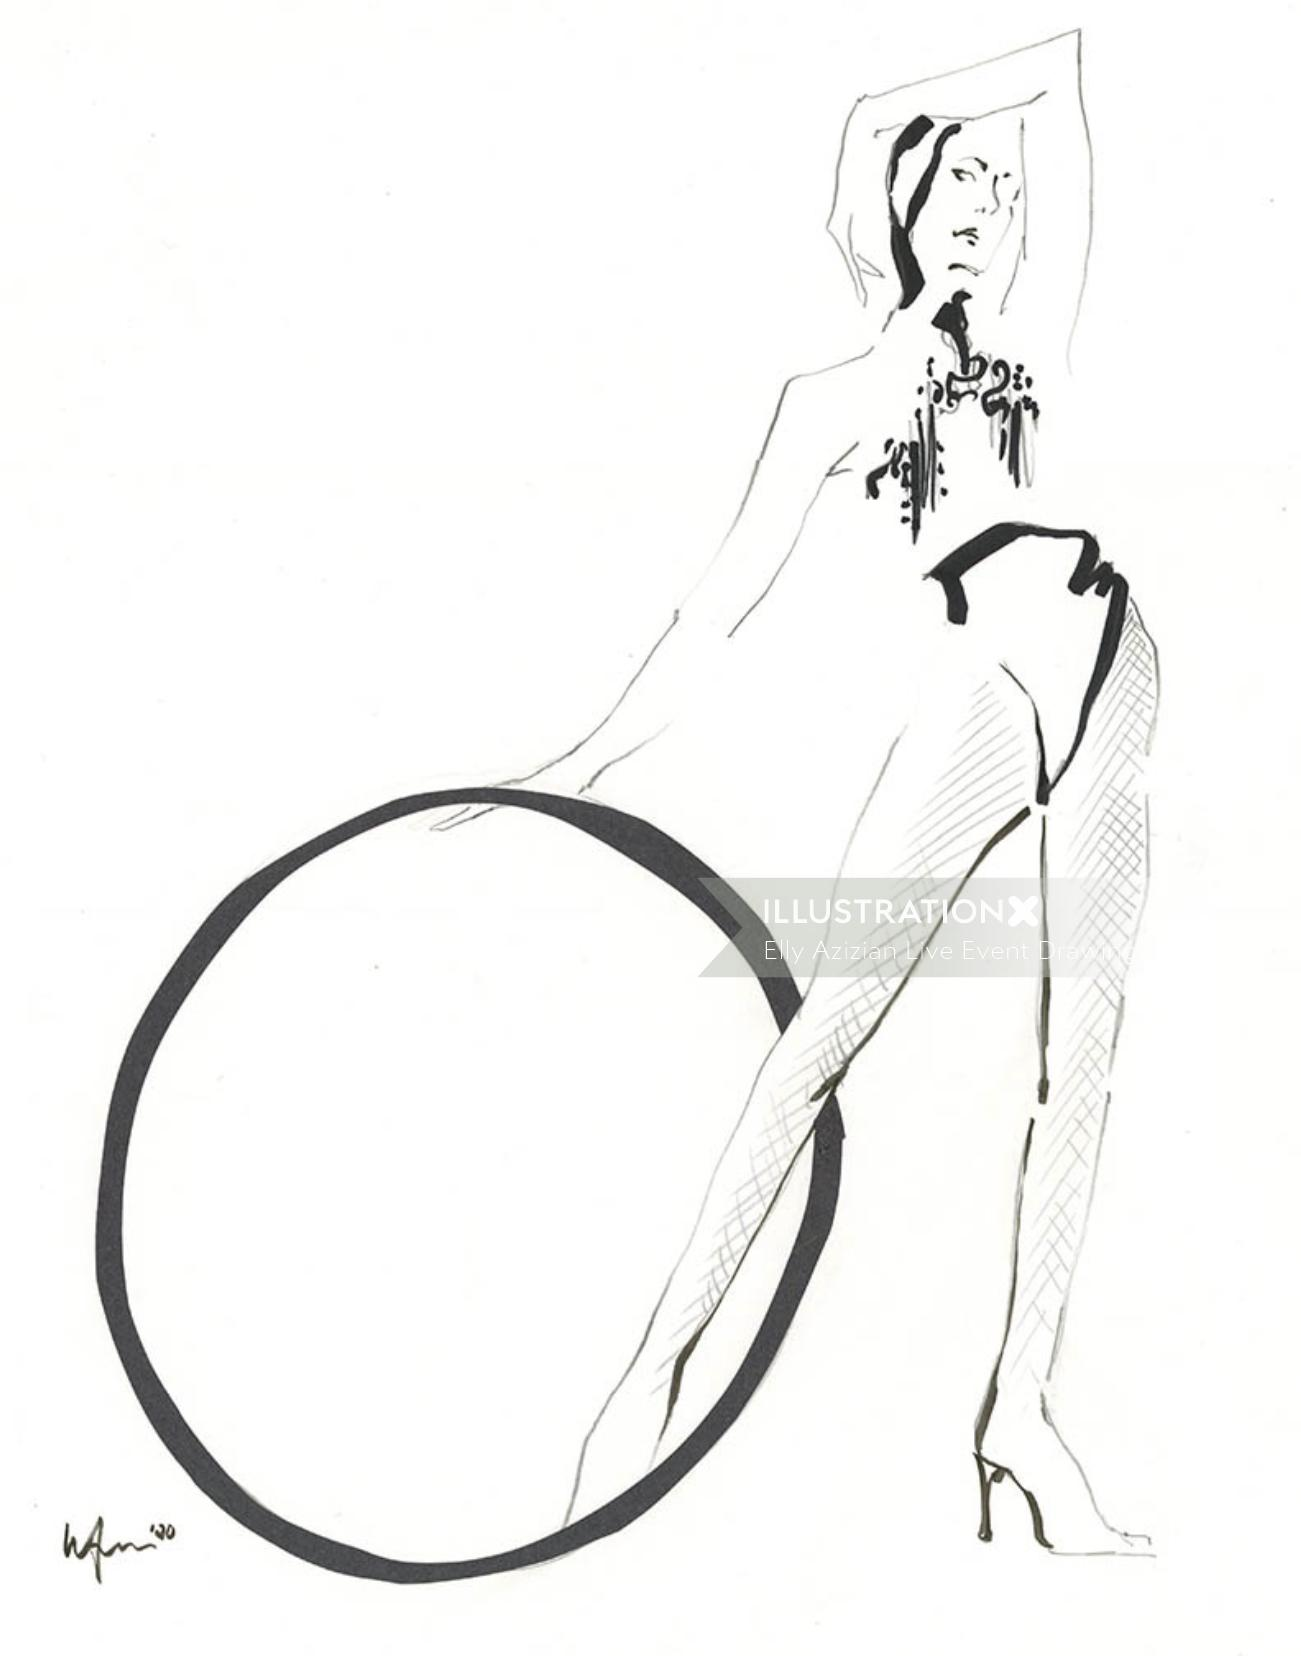 Live Drawring of Model with ring